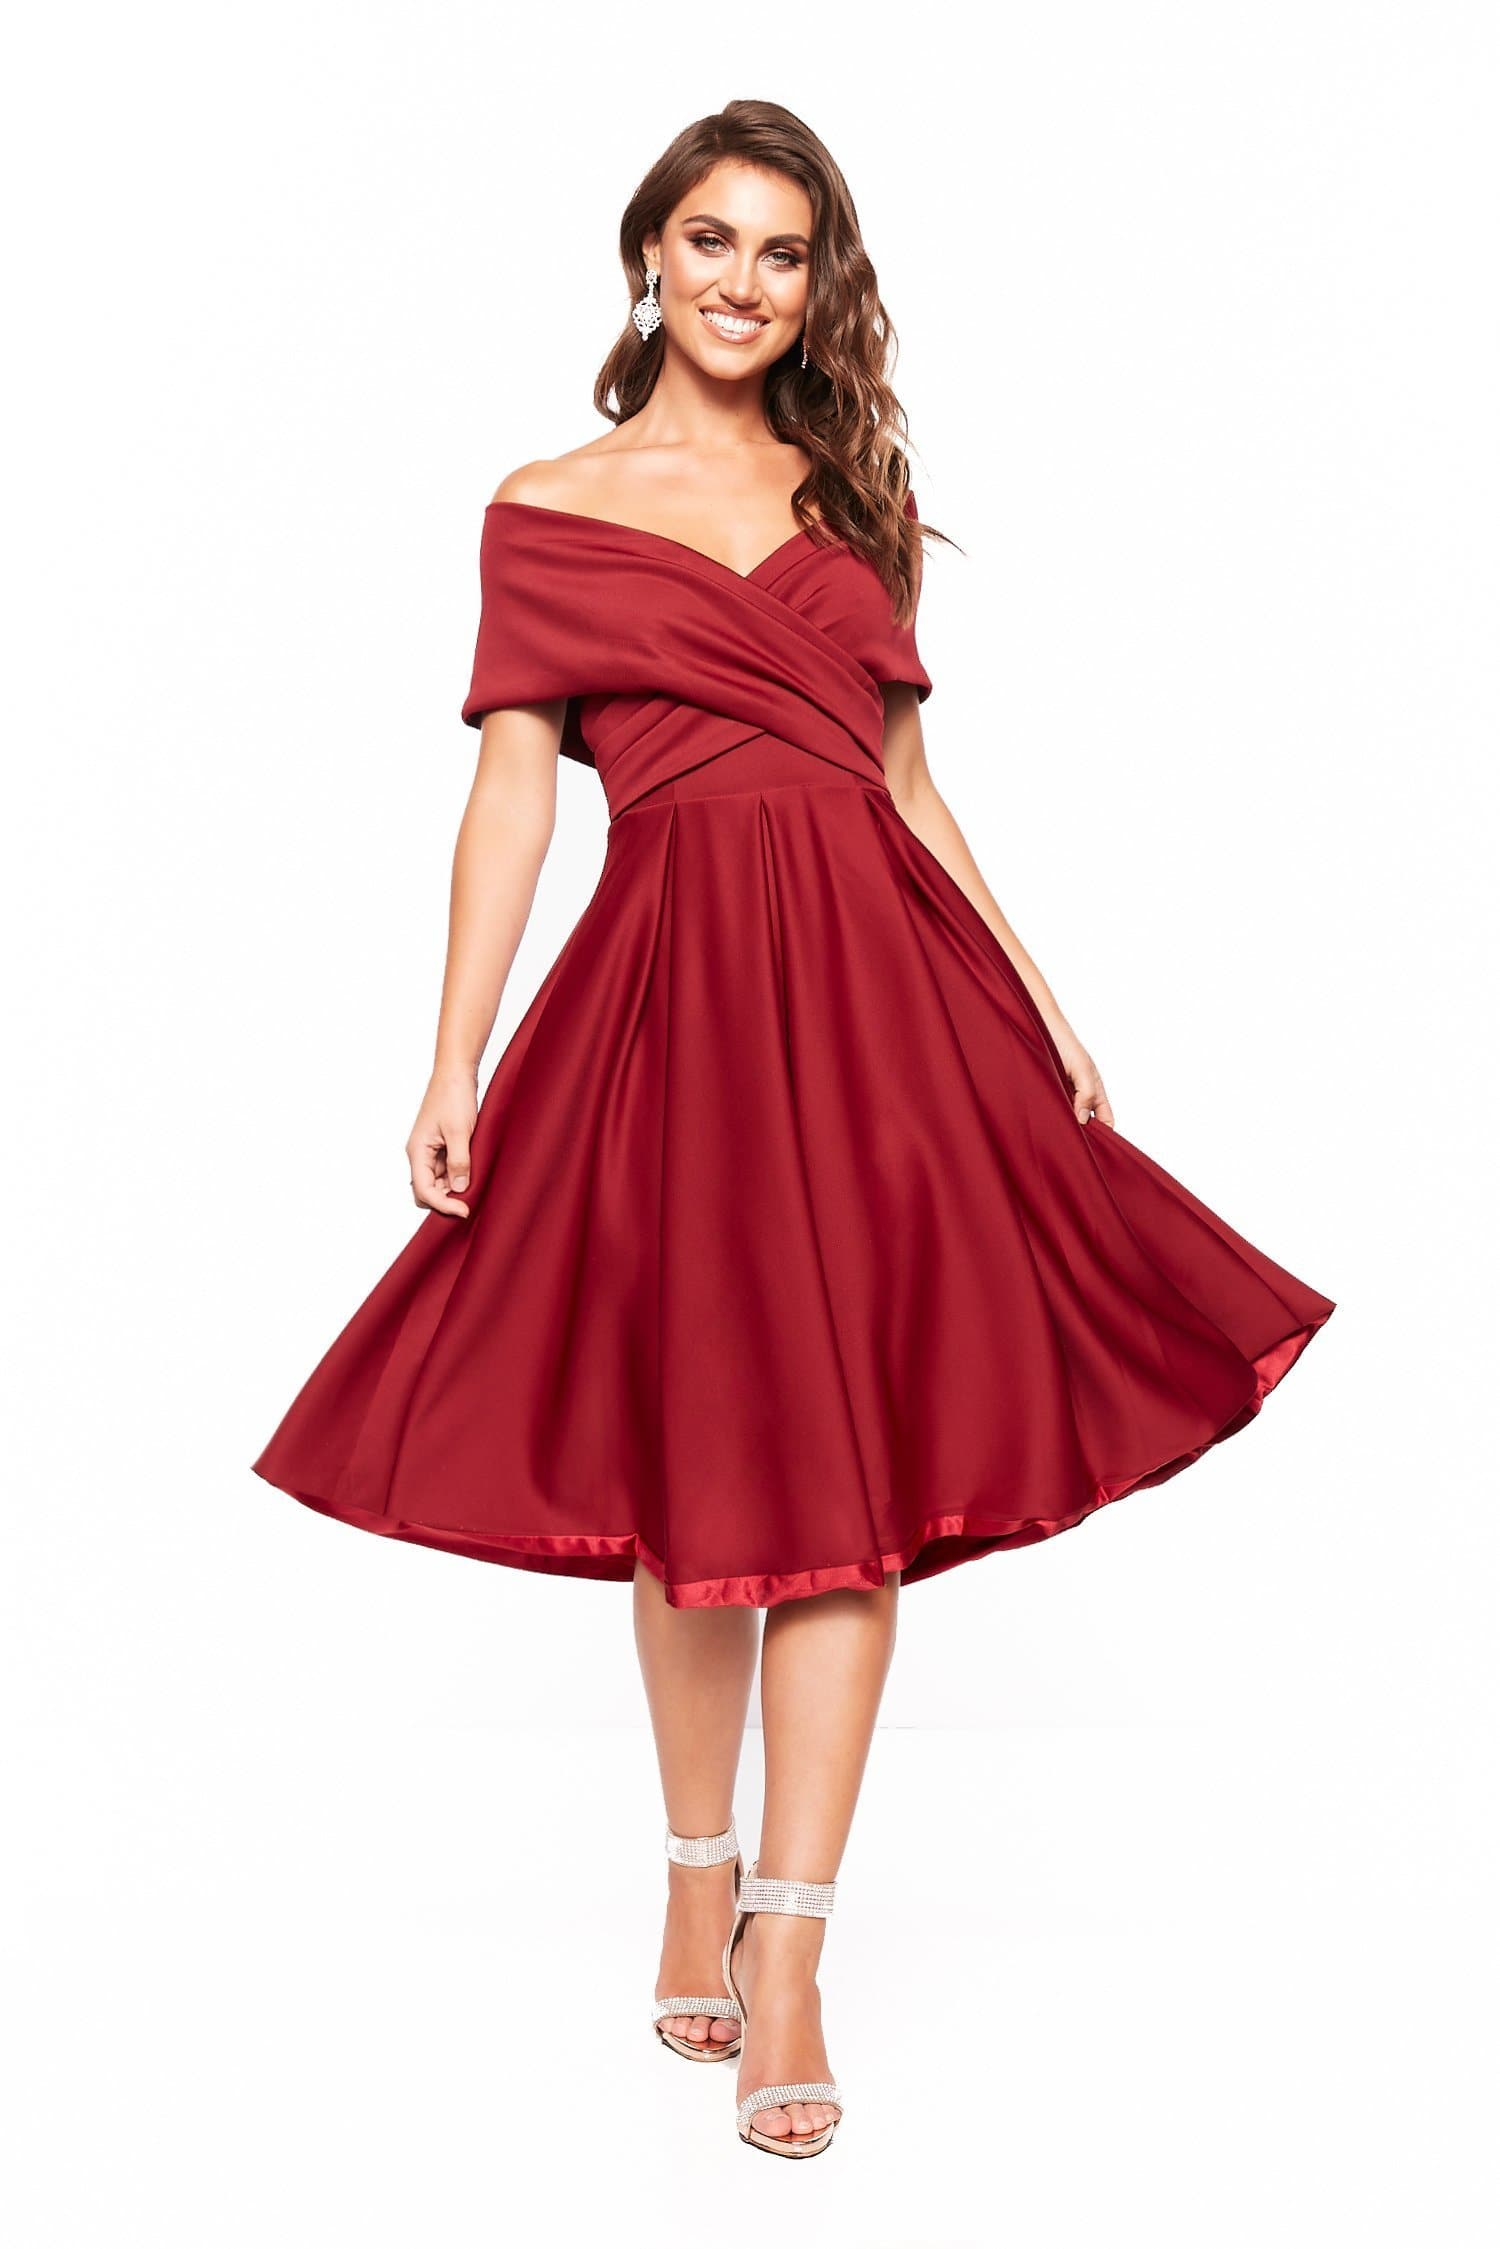 buy best buy good preview of A&N Elyse Cocktail Dress - Burgundy